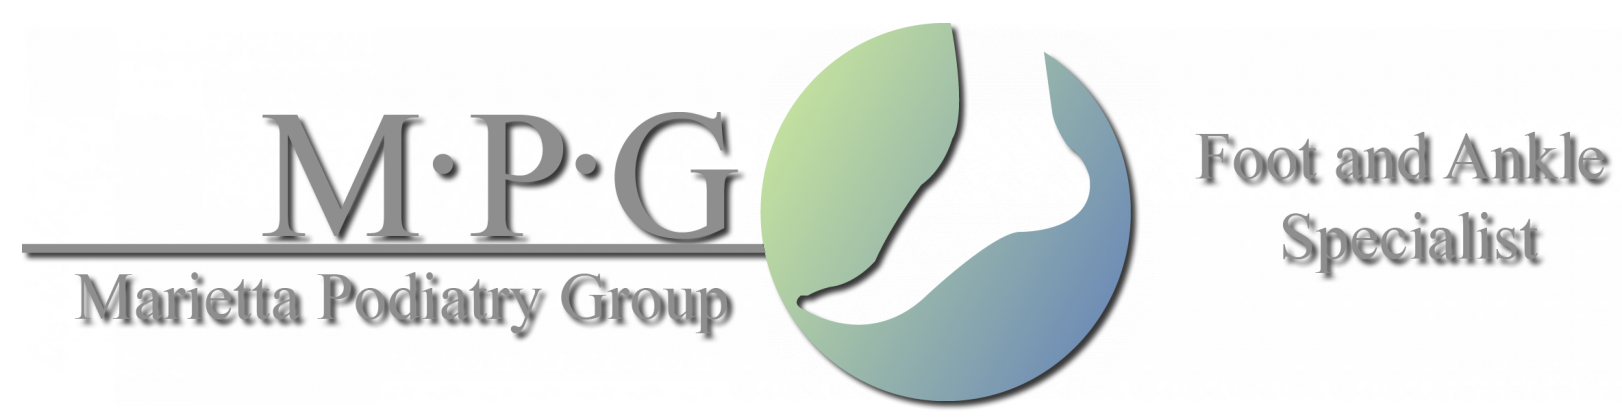 Marietta Podiatry Group Logo